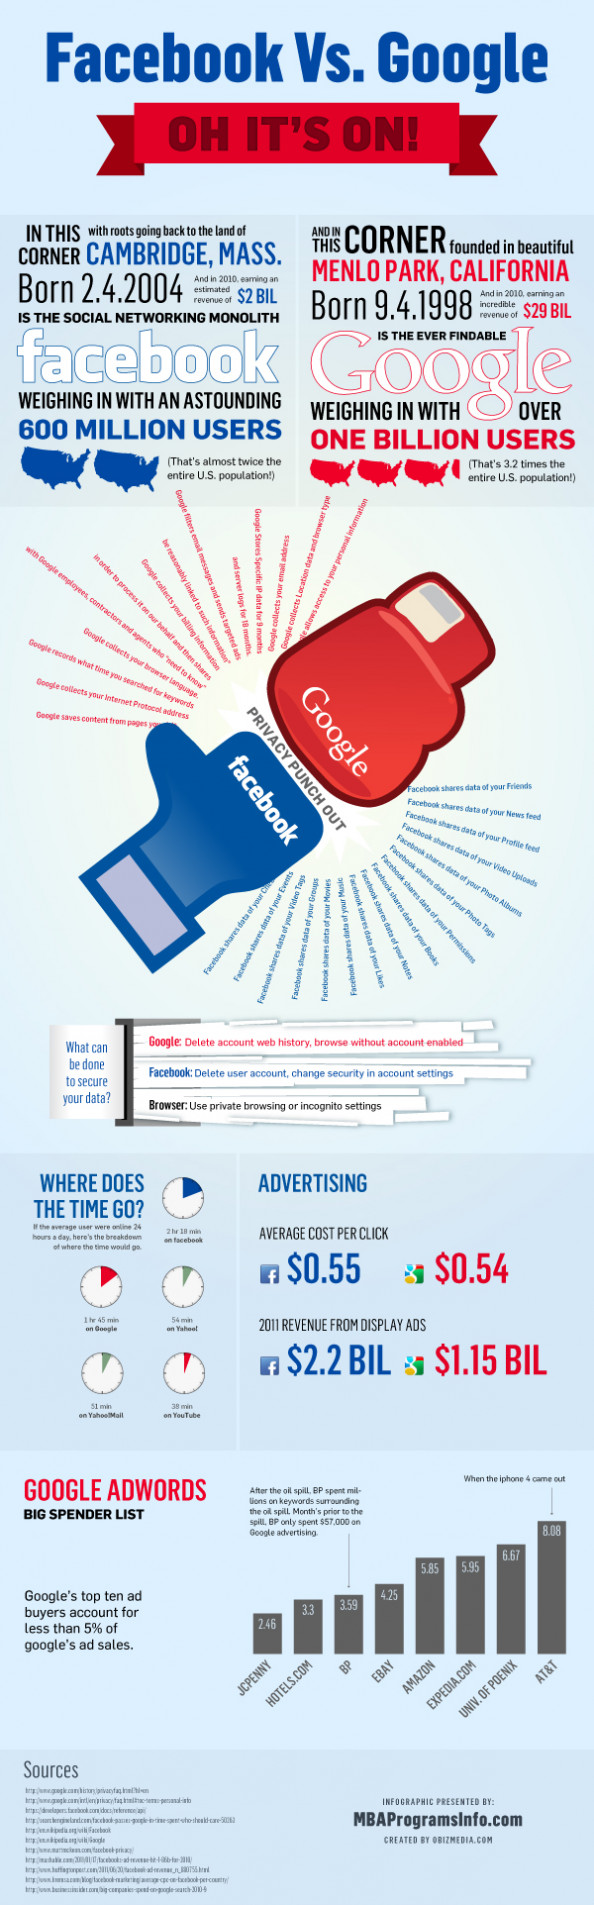 Facebook vs Google, Oh It's On! Infographic